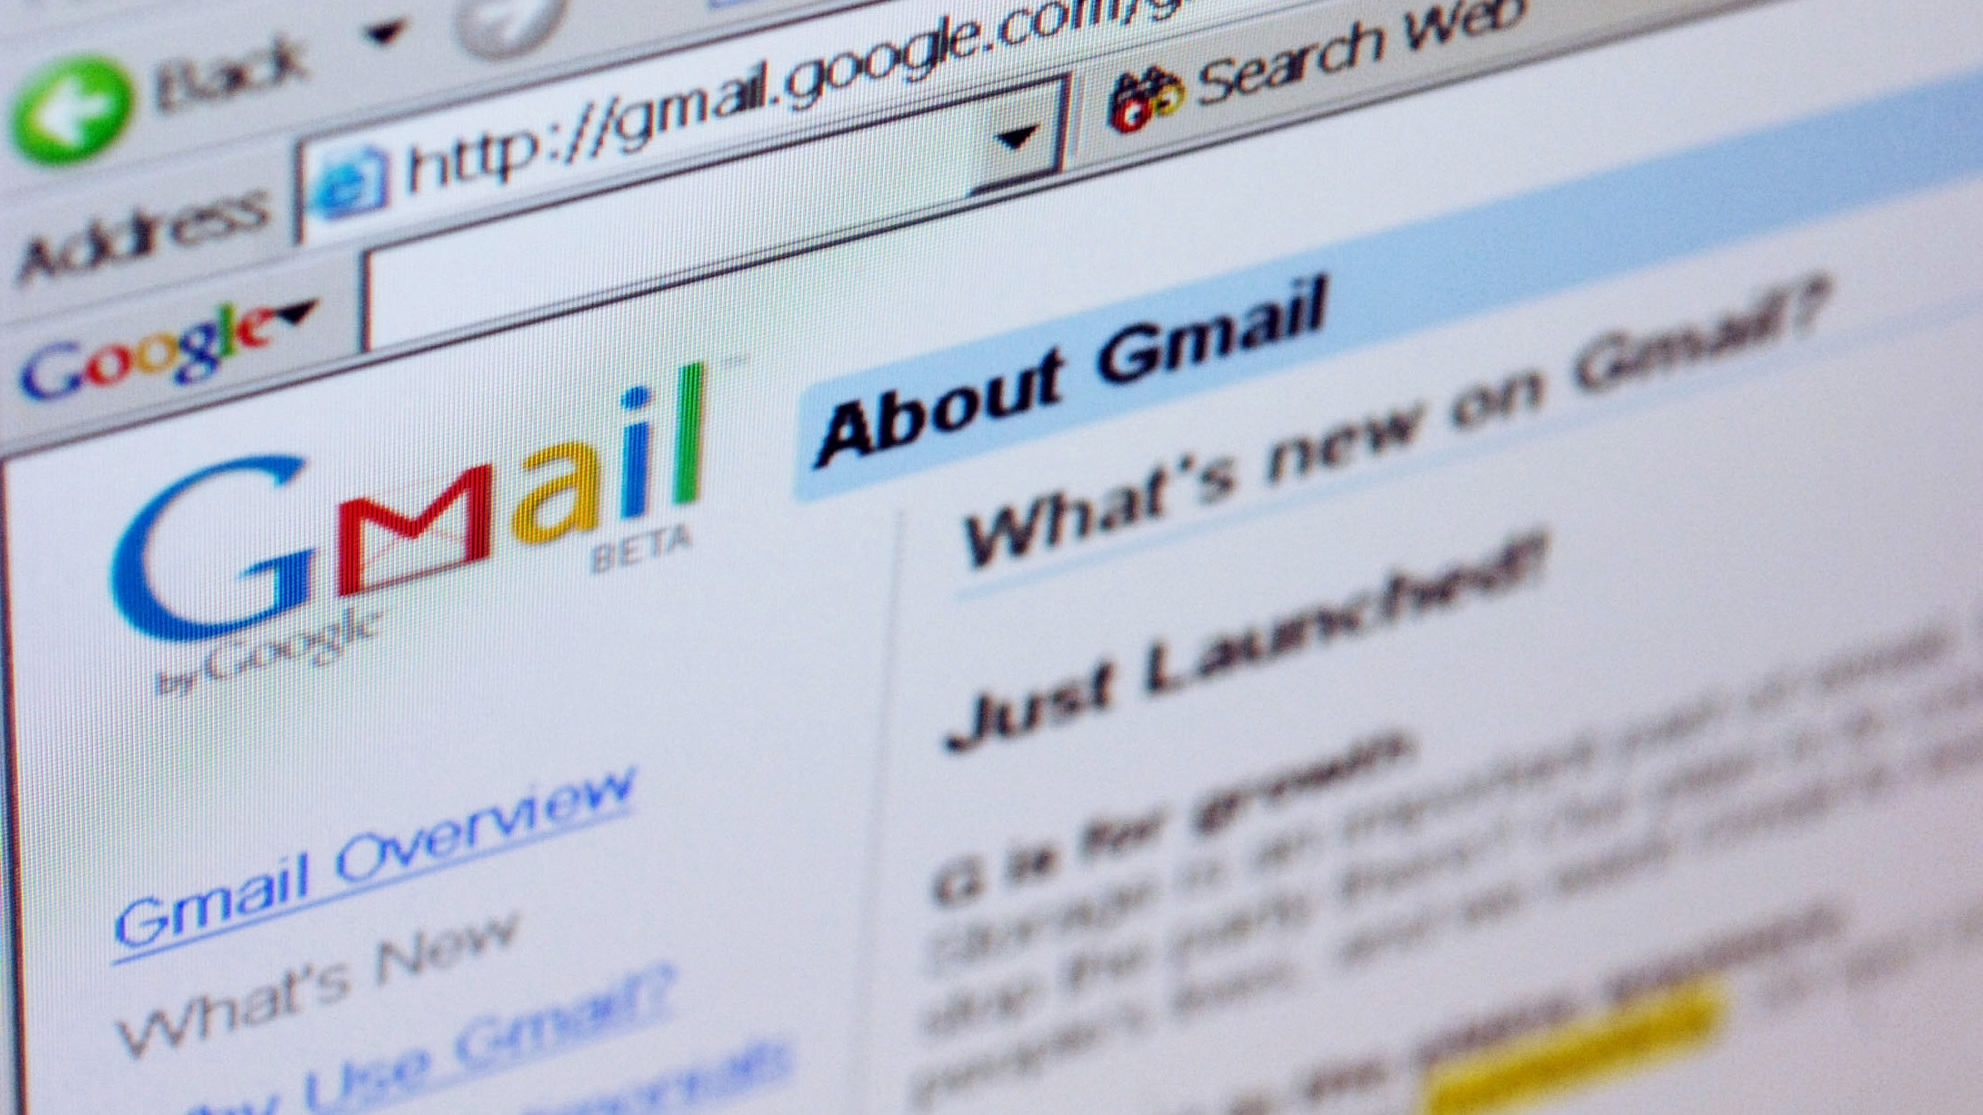 Spam campaign targets Google users with malicious link - CGTN